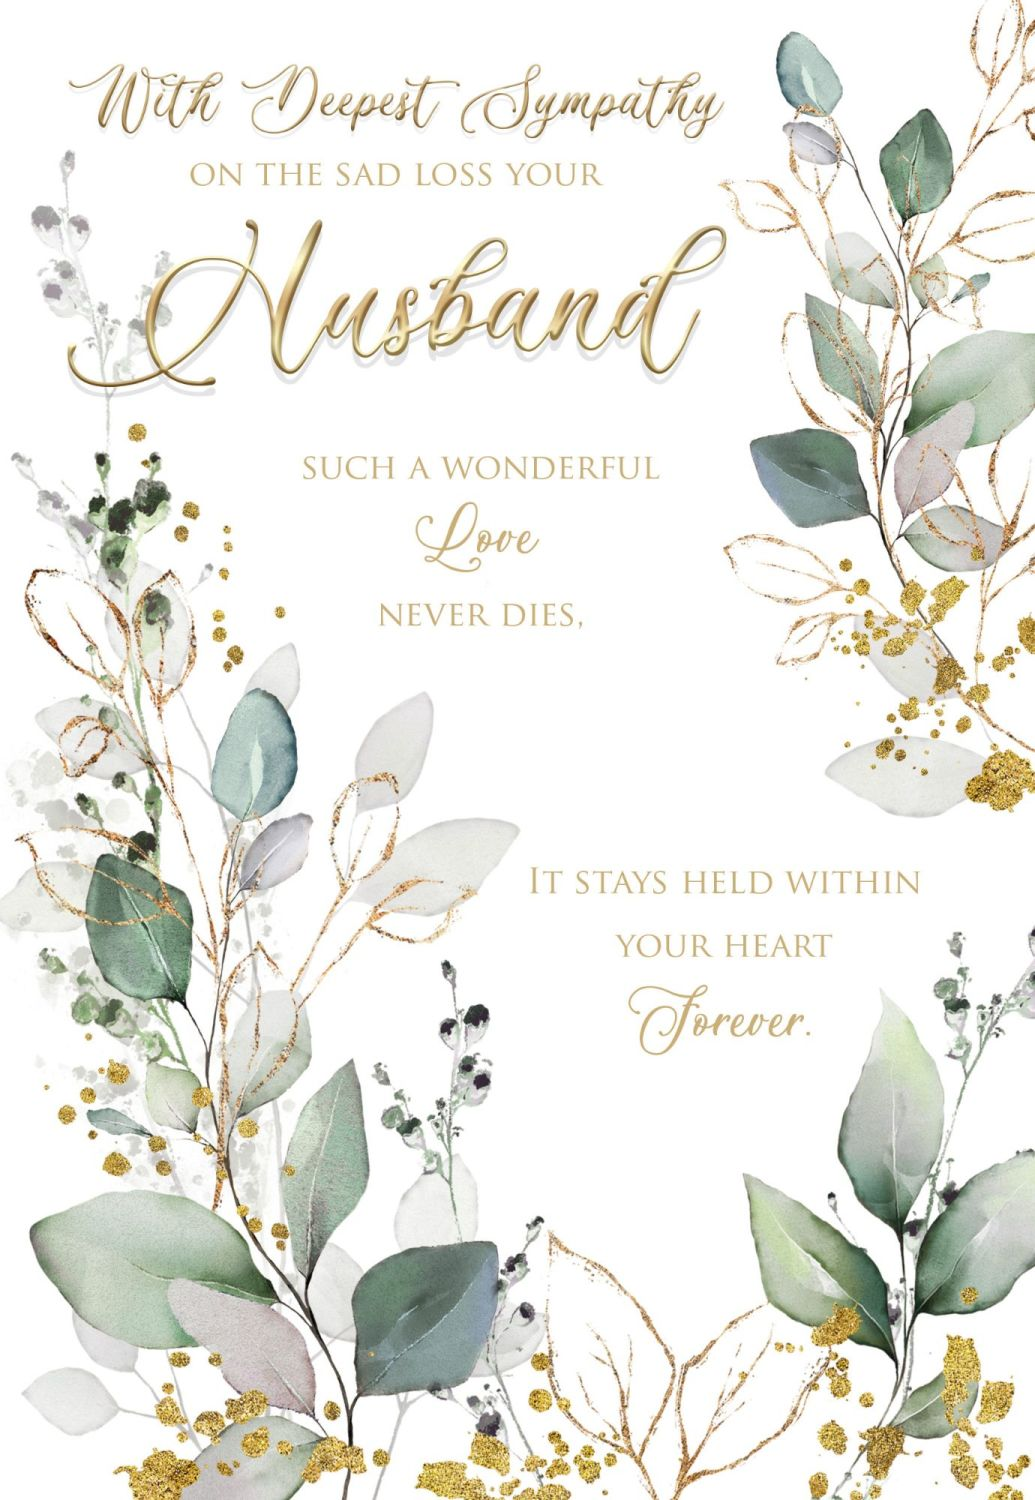 With Deepest Sympathy Card -  SUCH A Wonderful LOVE - LOSS Of HUSBAND Cards